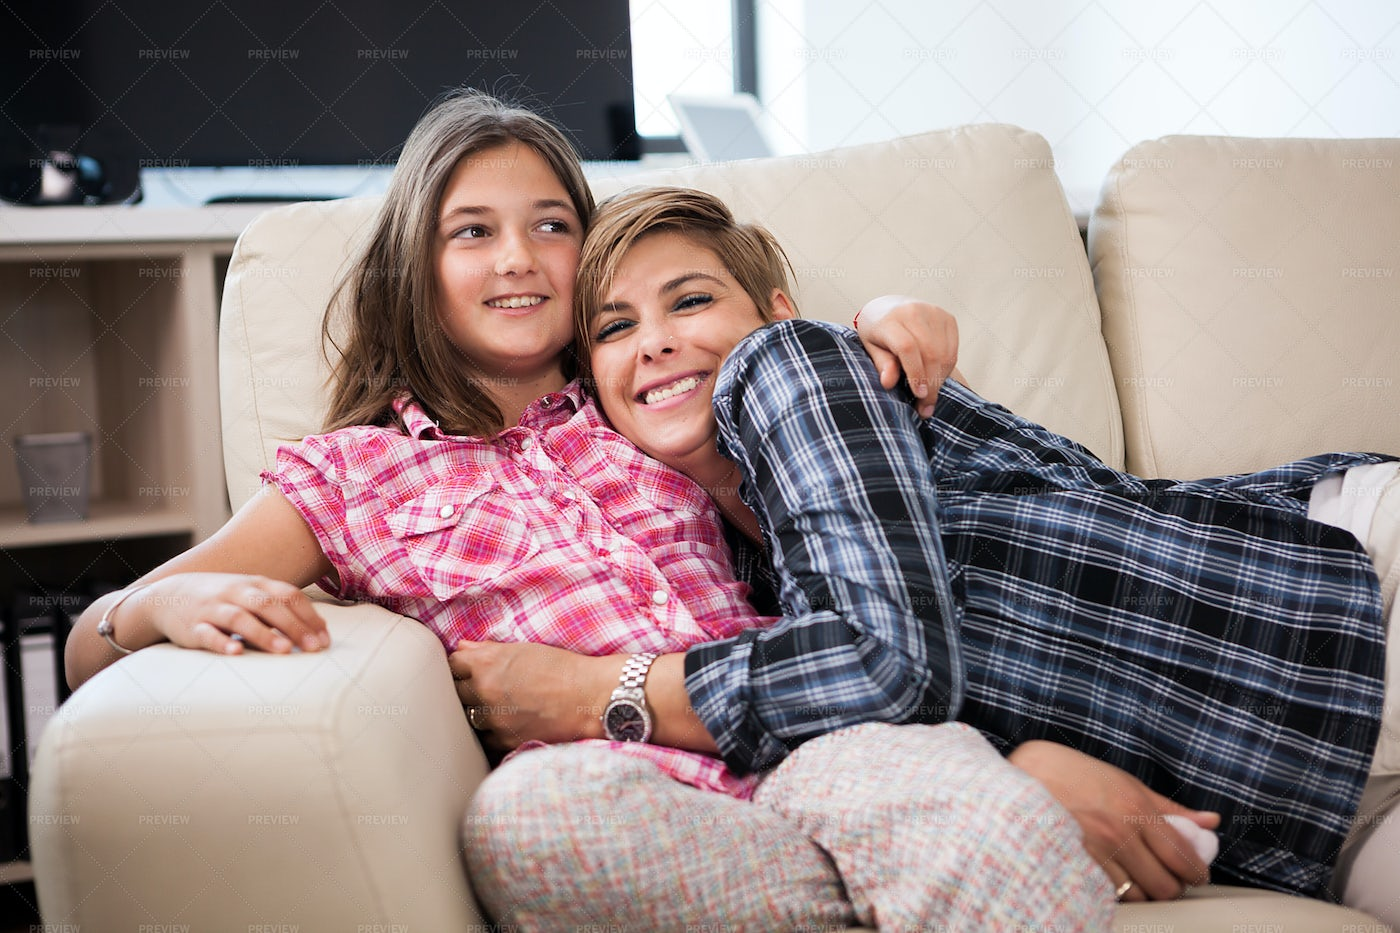 Hugging On The Couch: Stock Photos